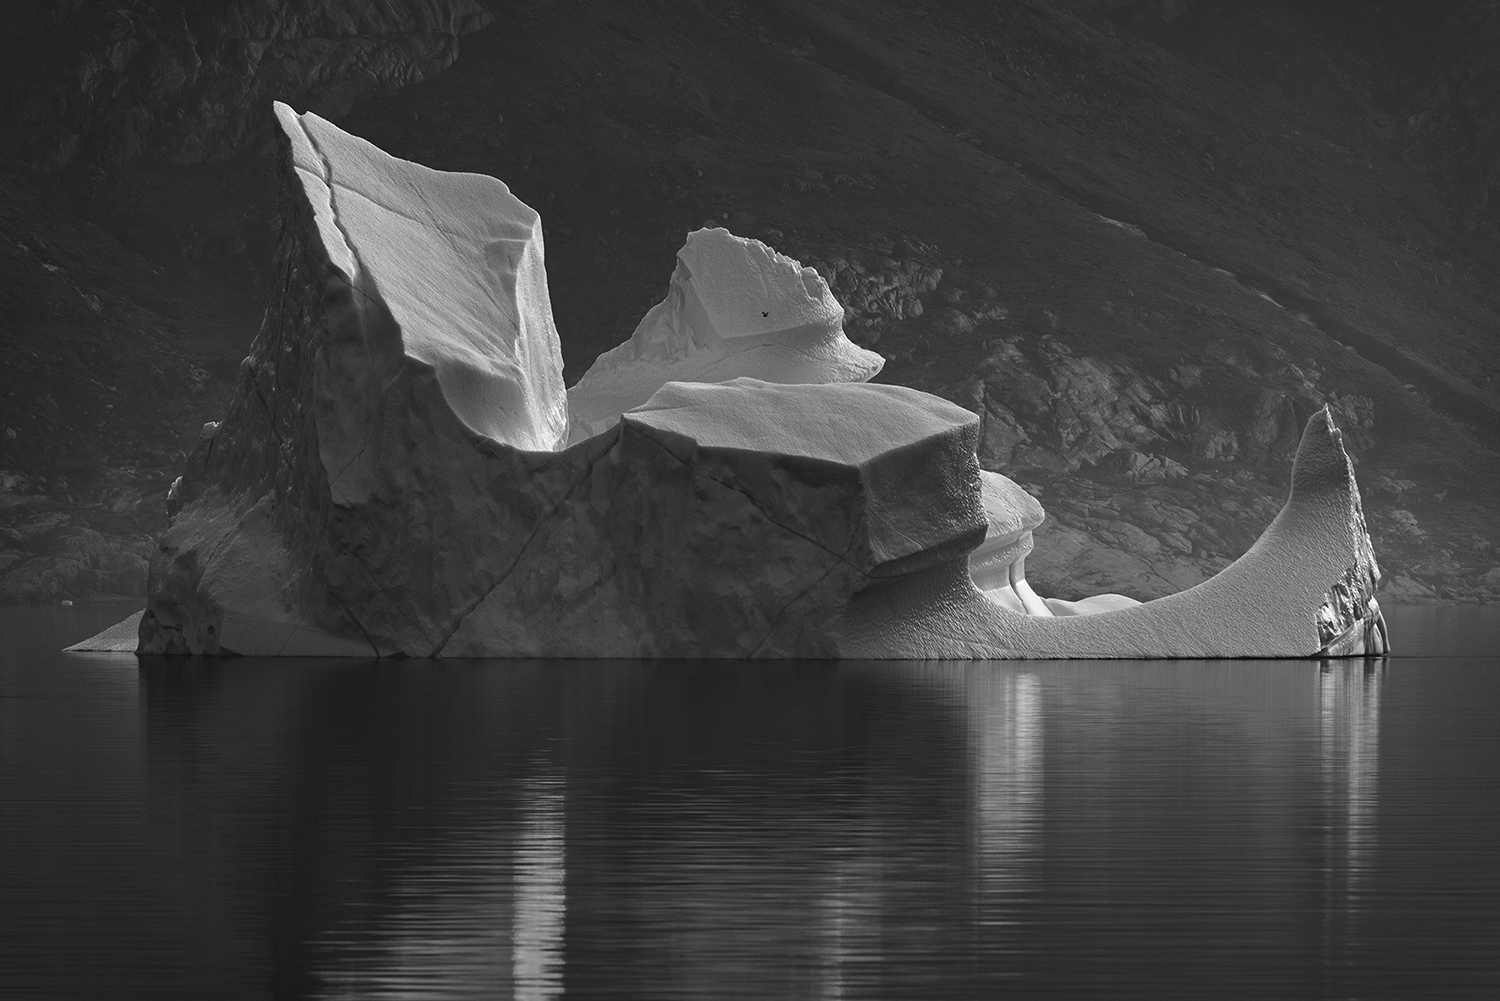 Icebergs drifting outside the coast of Greenland. Positioned in the Arctic, Greenland is especially vulnerable to climate change and has experienced record melting in recent years and is likely to contribute substantially to sea level rise as well as to possible changes in ocean circulation in the future. Glaciers worldwide store about 75 percent of the world's fresh water and if all land ice melted, sea level would rise approximately 70 meters worldwide.